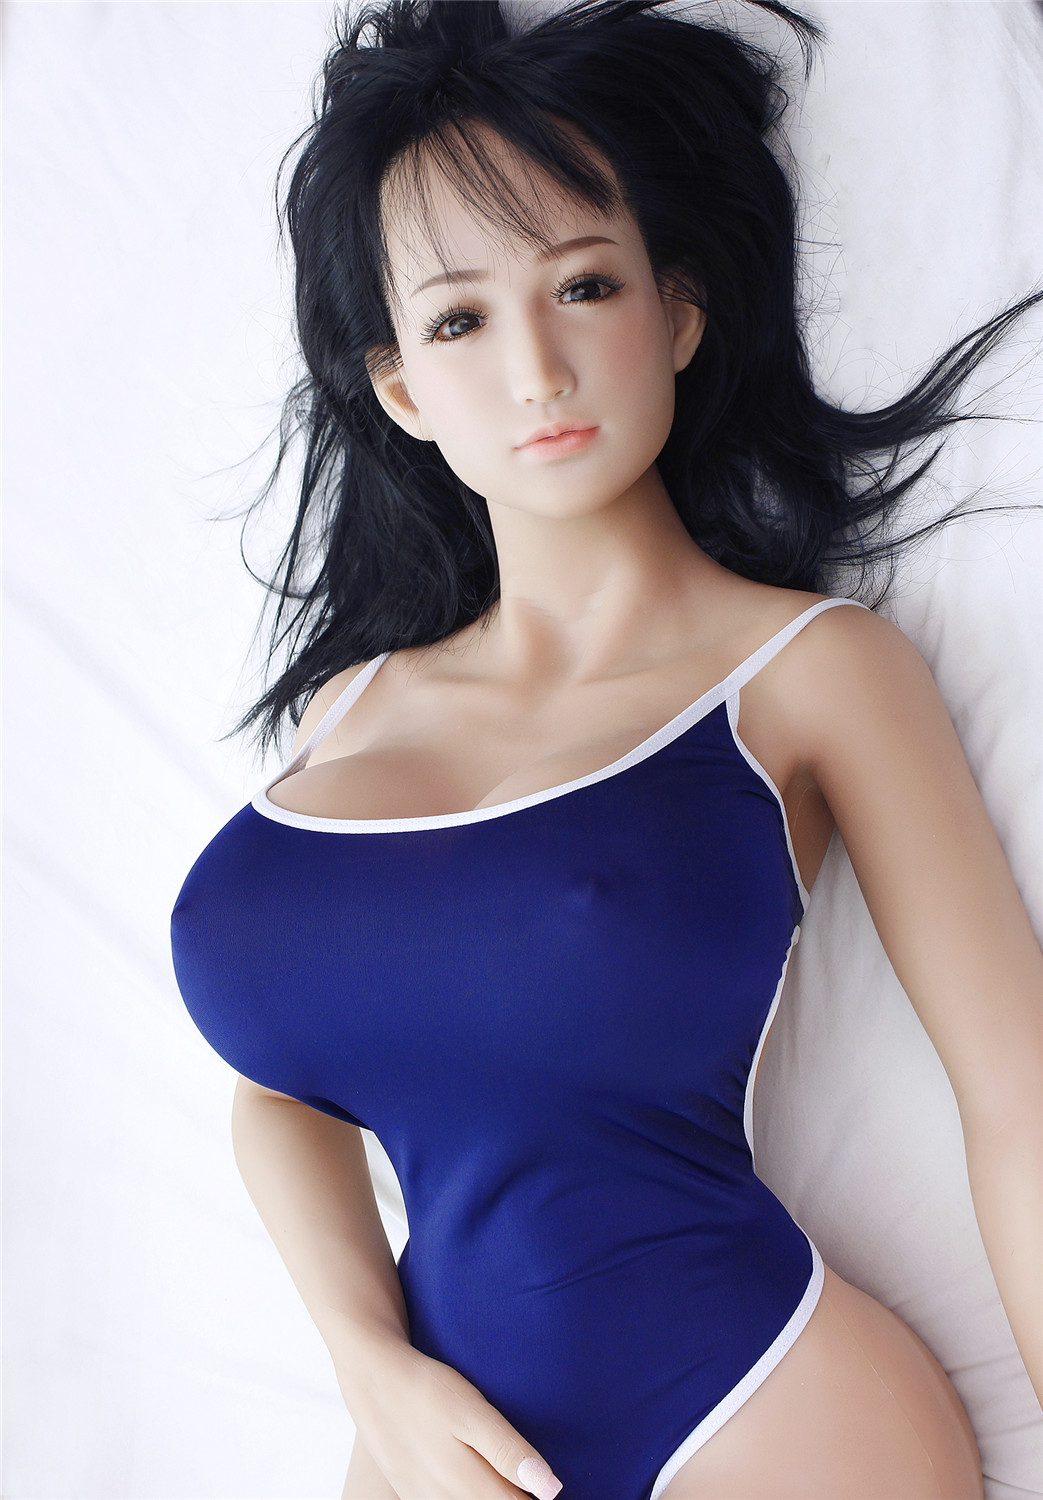 IL Doll 145cm(4.75ft) H-Cup Full Size lifelike Sex Silicone Doll with Head #26